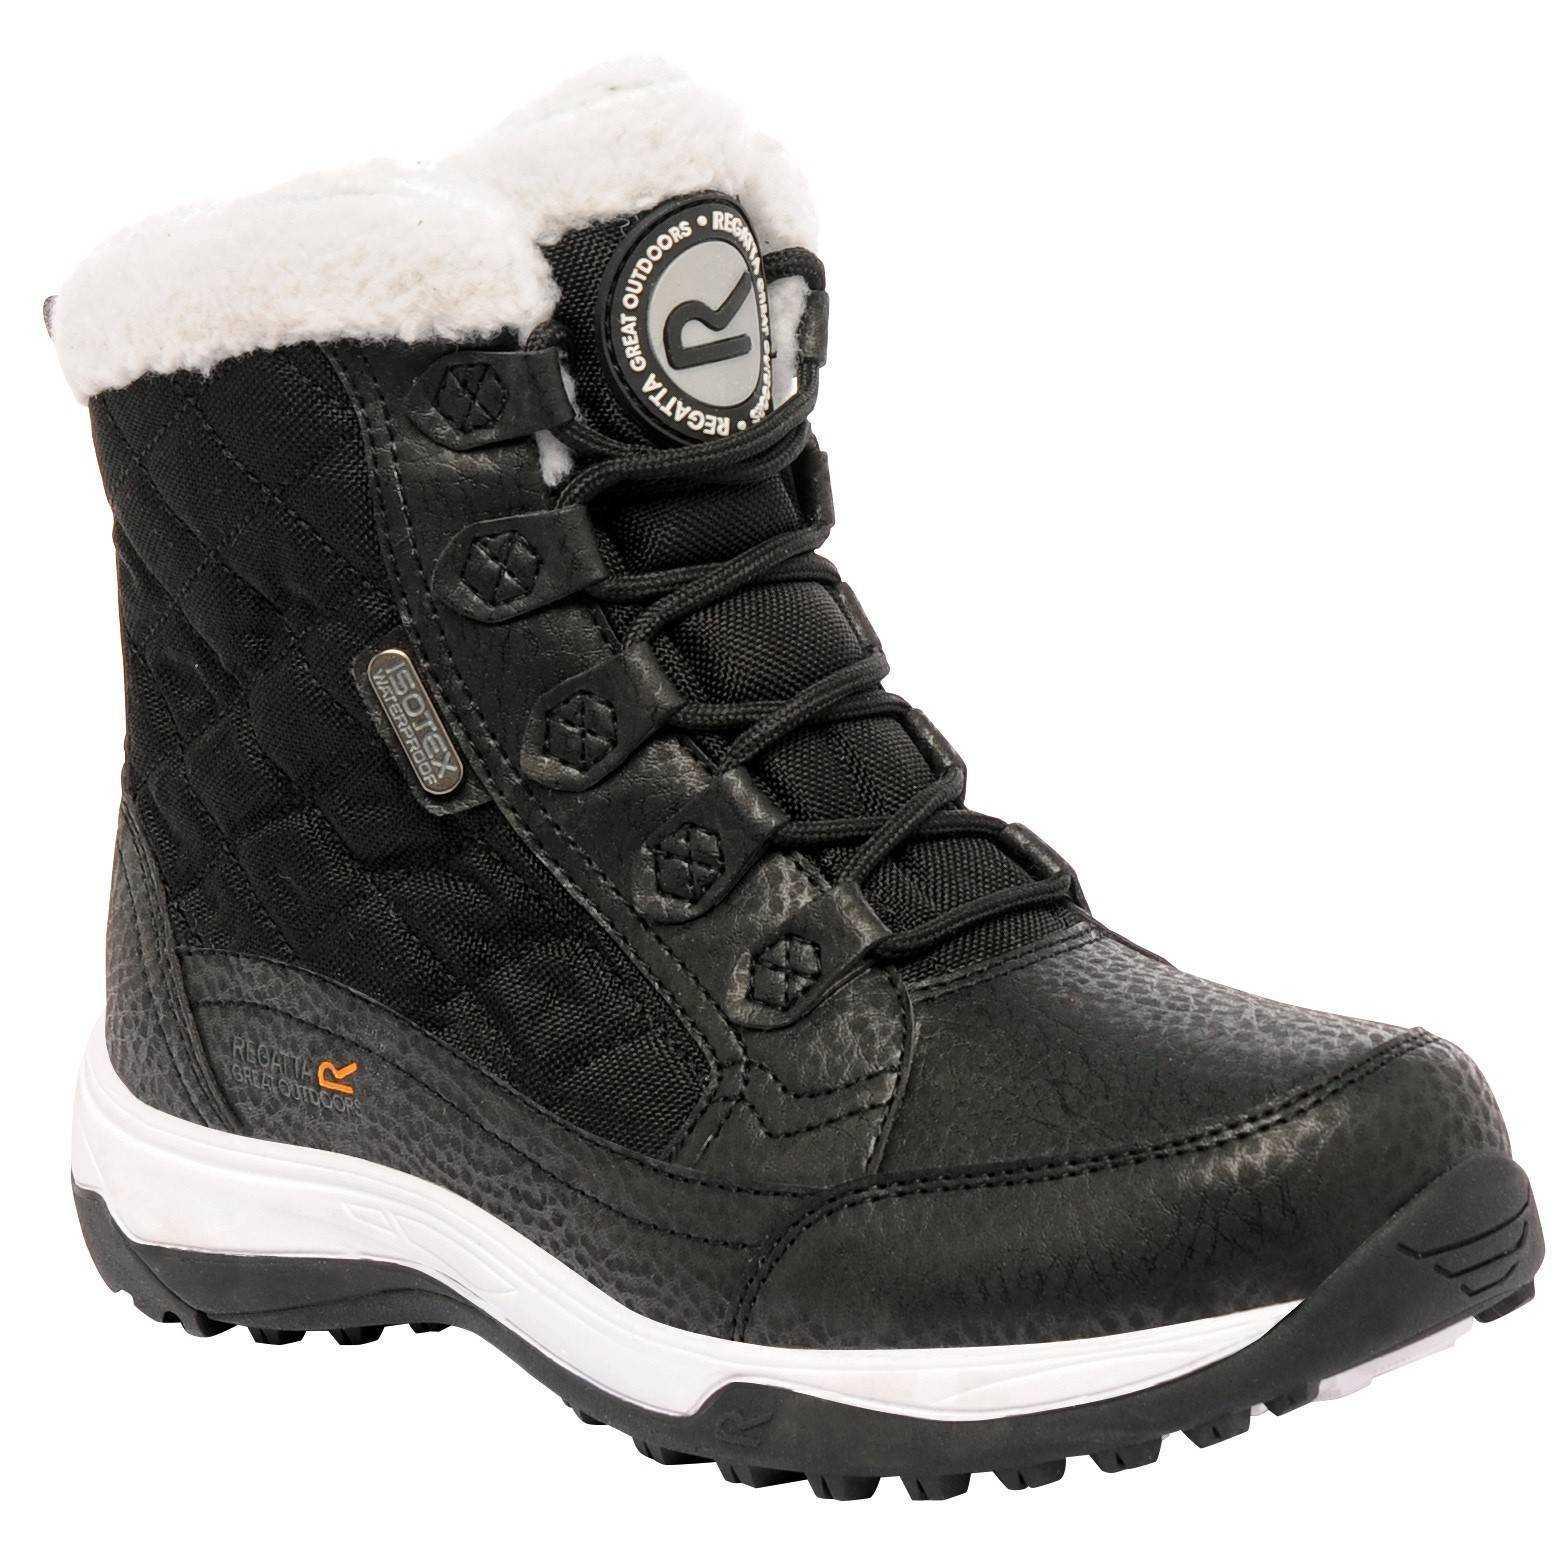 REGATTA Ботинки женские LEDY ASTORIA WINTER BOOTS, black